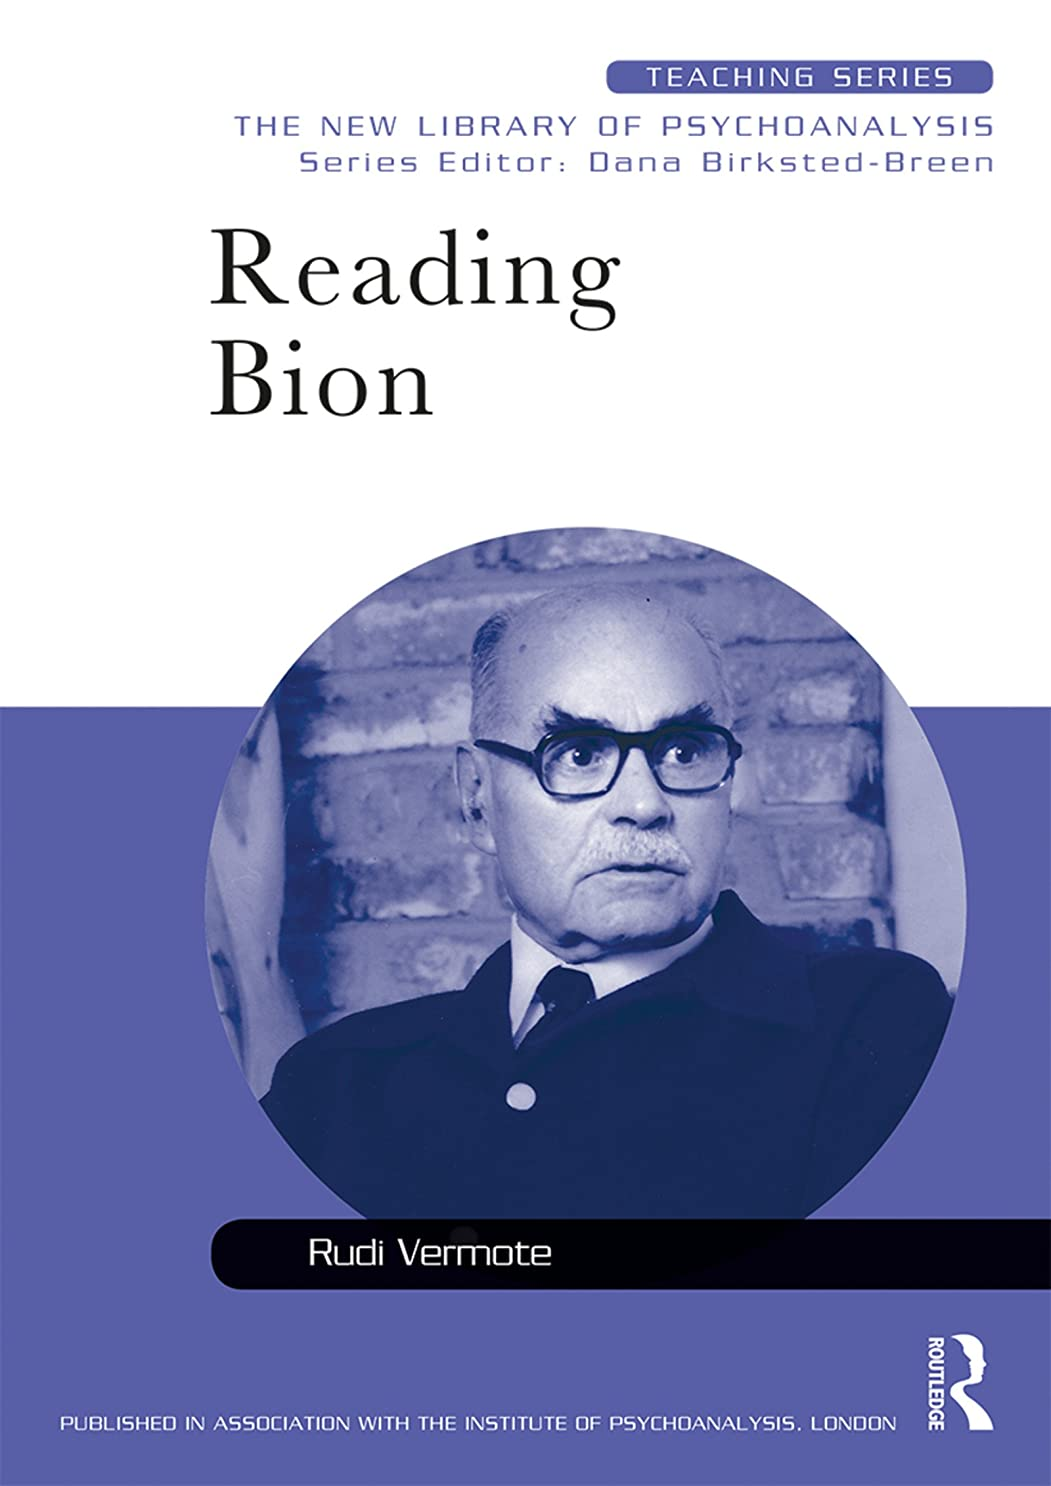 ゲージ十分ではないめ言葉Reading Bion (New Library of Psychoanalysis Teaching Series) (English Edition)